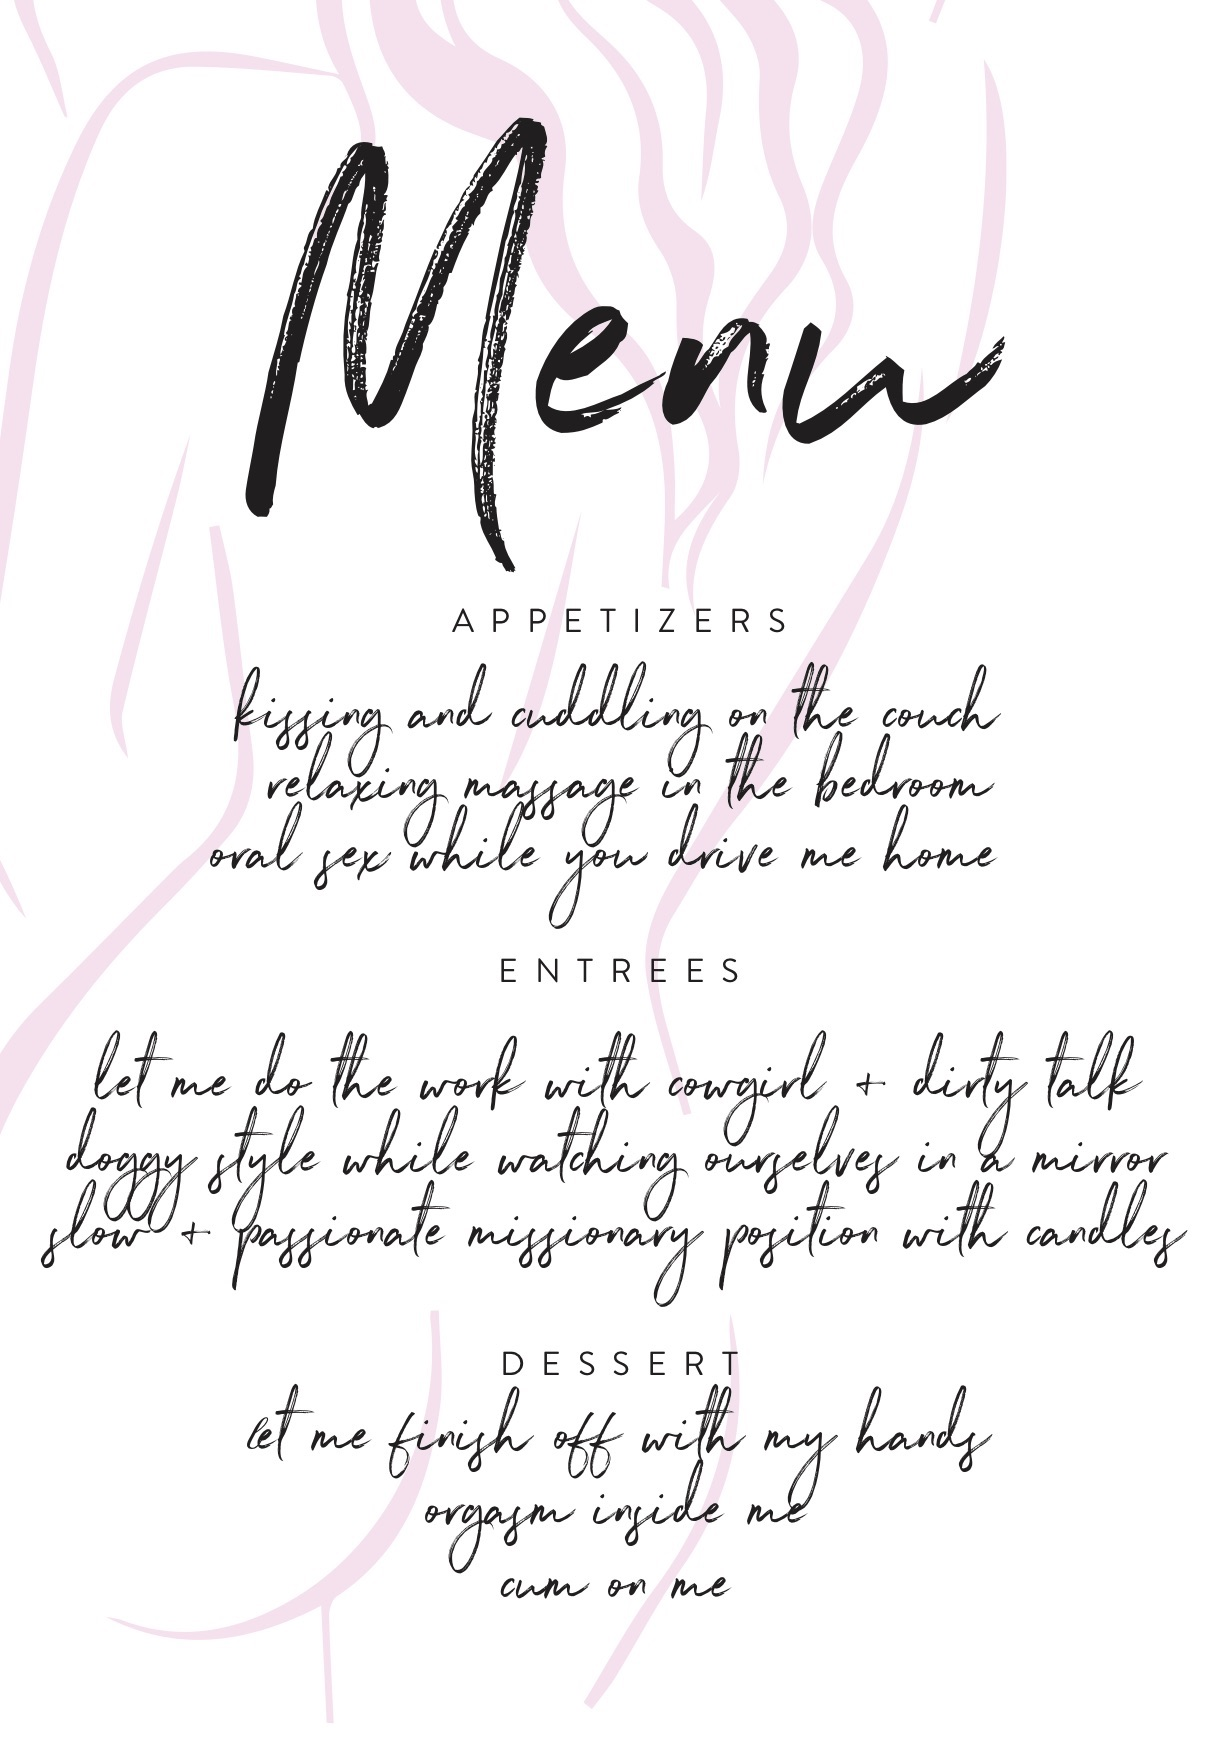 Printable sex menu with a choice of 3 appetizers, 3 entrees and 3 desserts